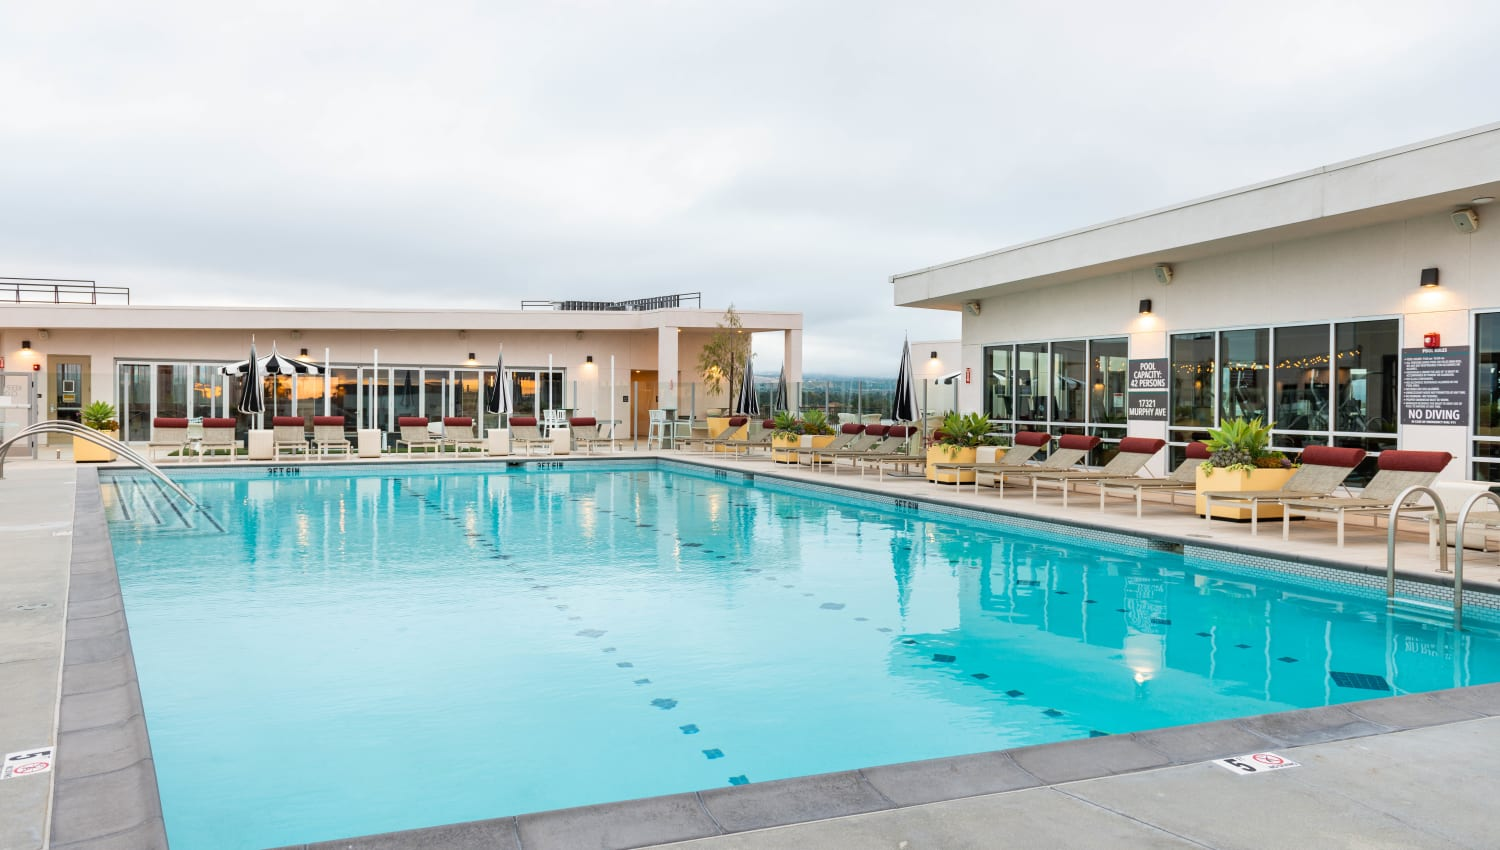 Rooftop swimming pool at Fusion Apartments in Irvine, California